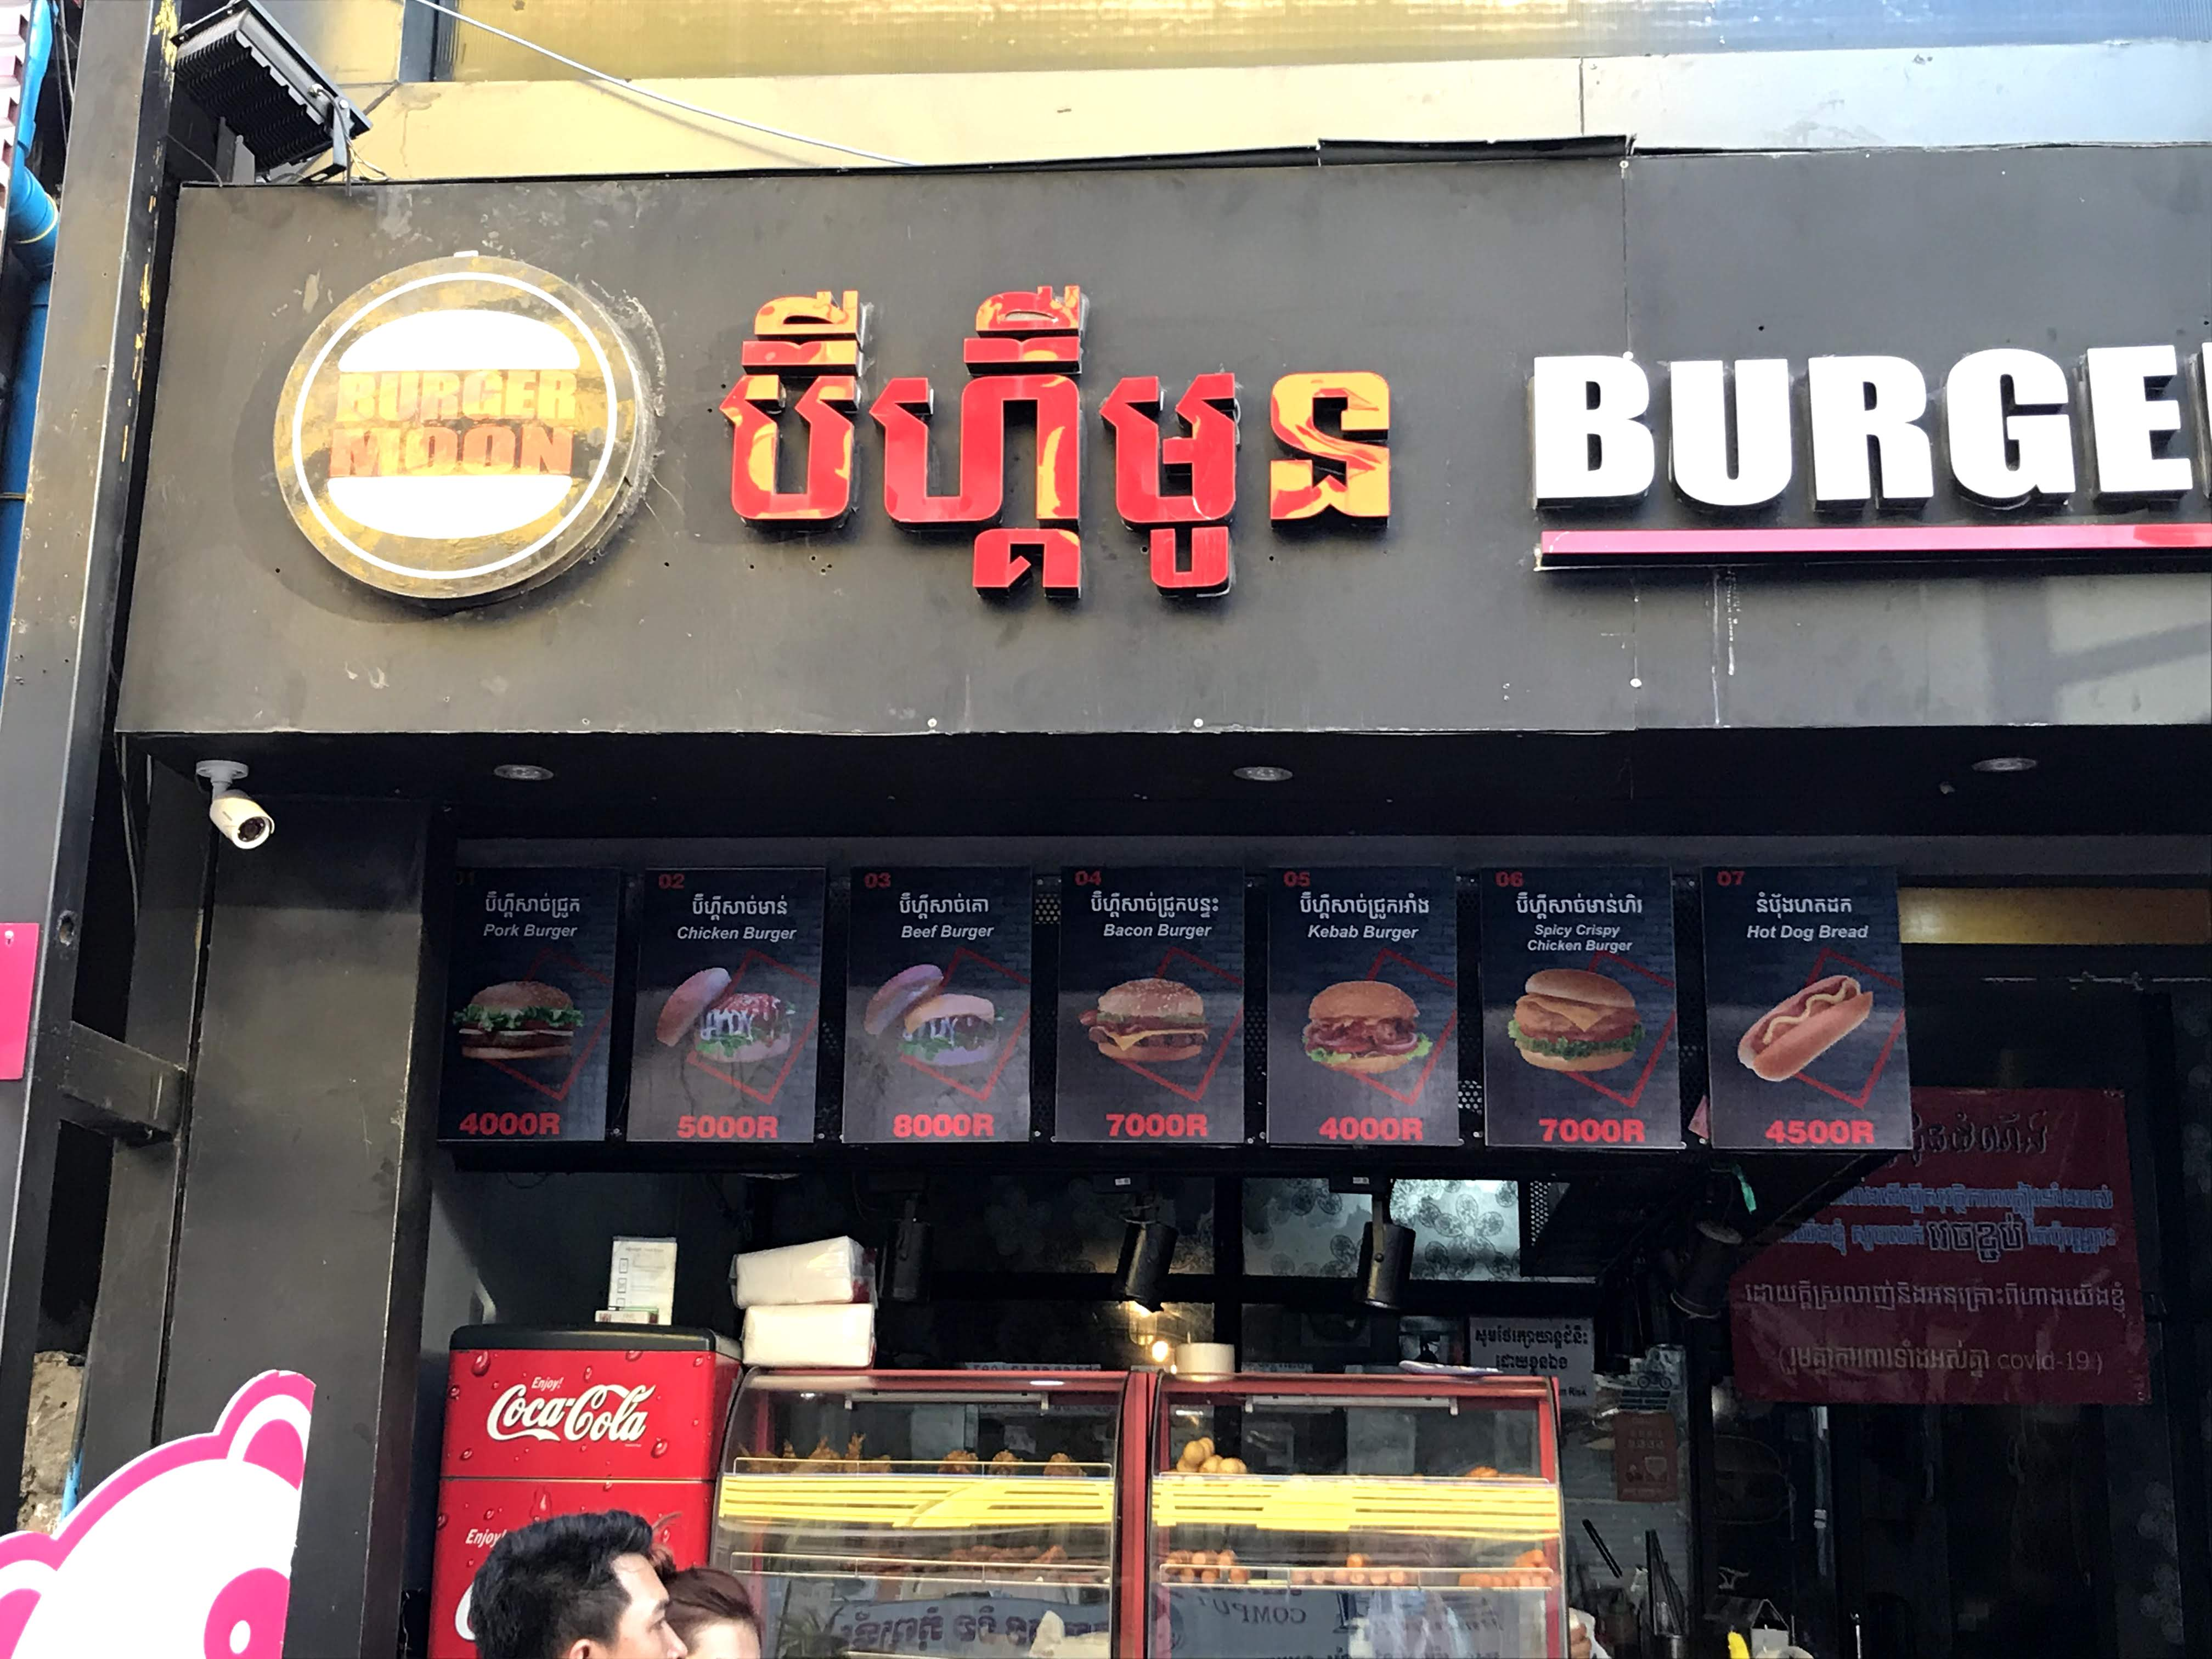 BURGER MOON Phnom Penh